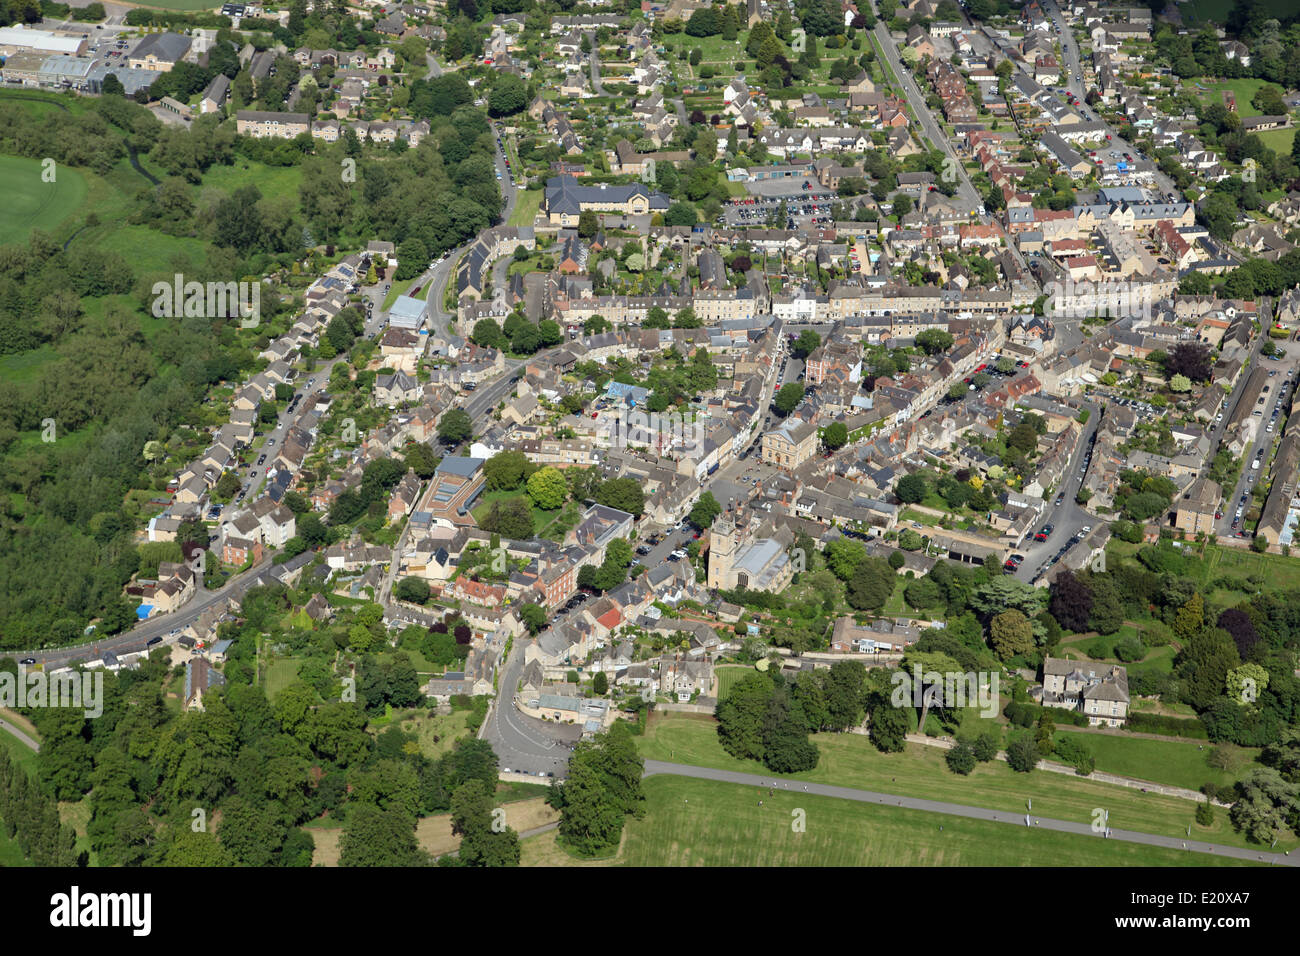 aerial view of the village of Woodstock, near Blenheim, in Oxfordshire, UK - Stock Image